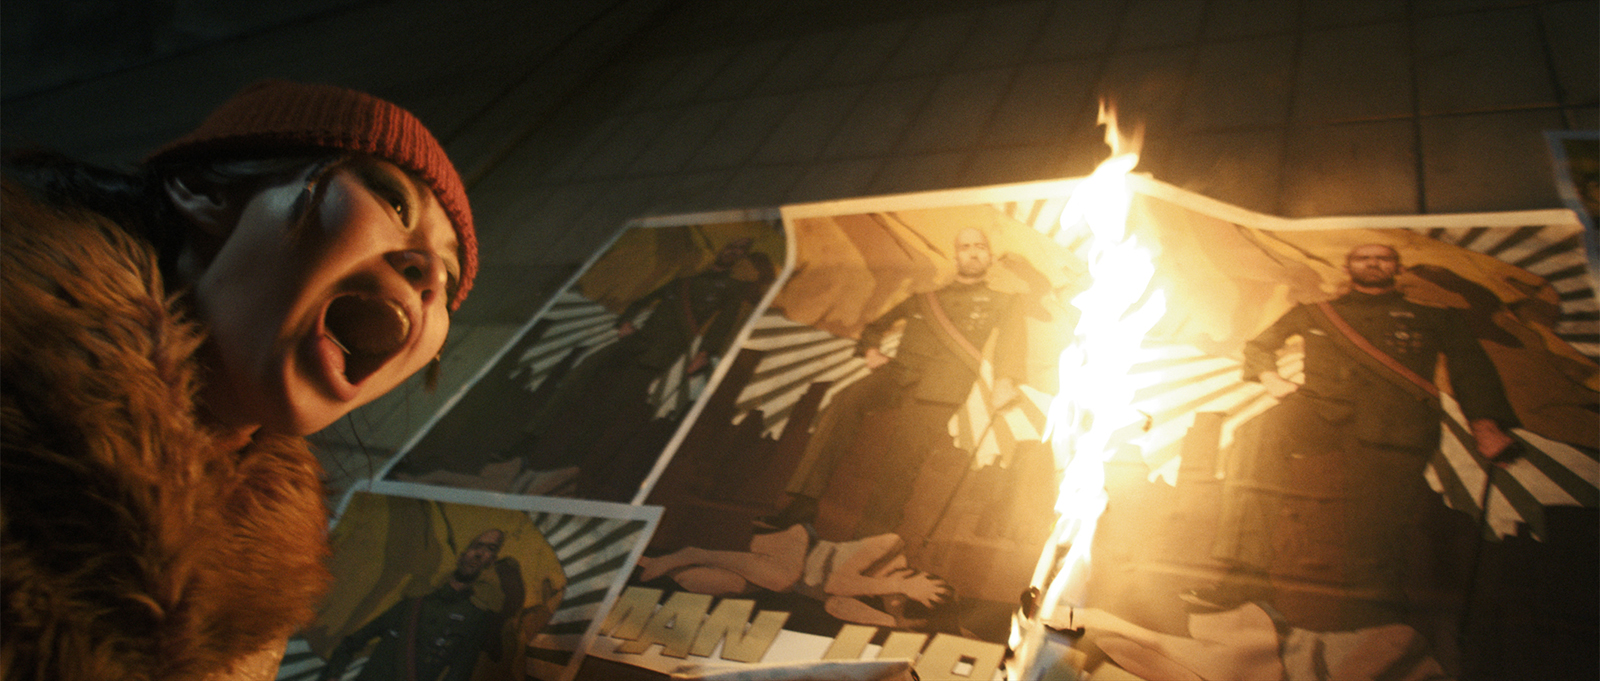 Still from the film Ningyo. Sen is standing next to a burning poster, screaming.